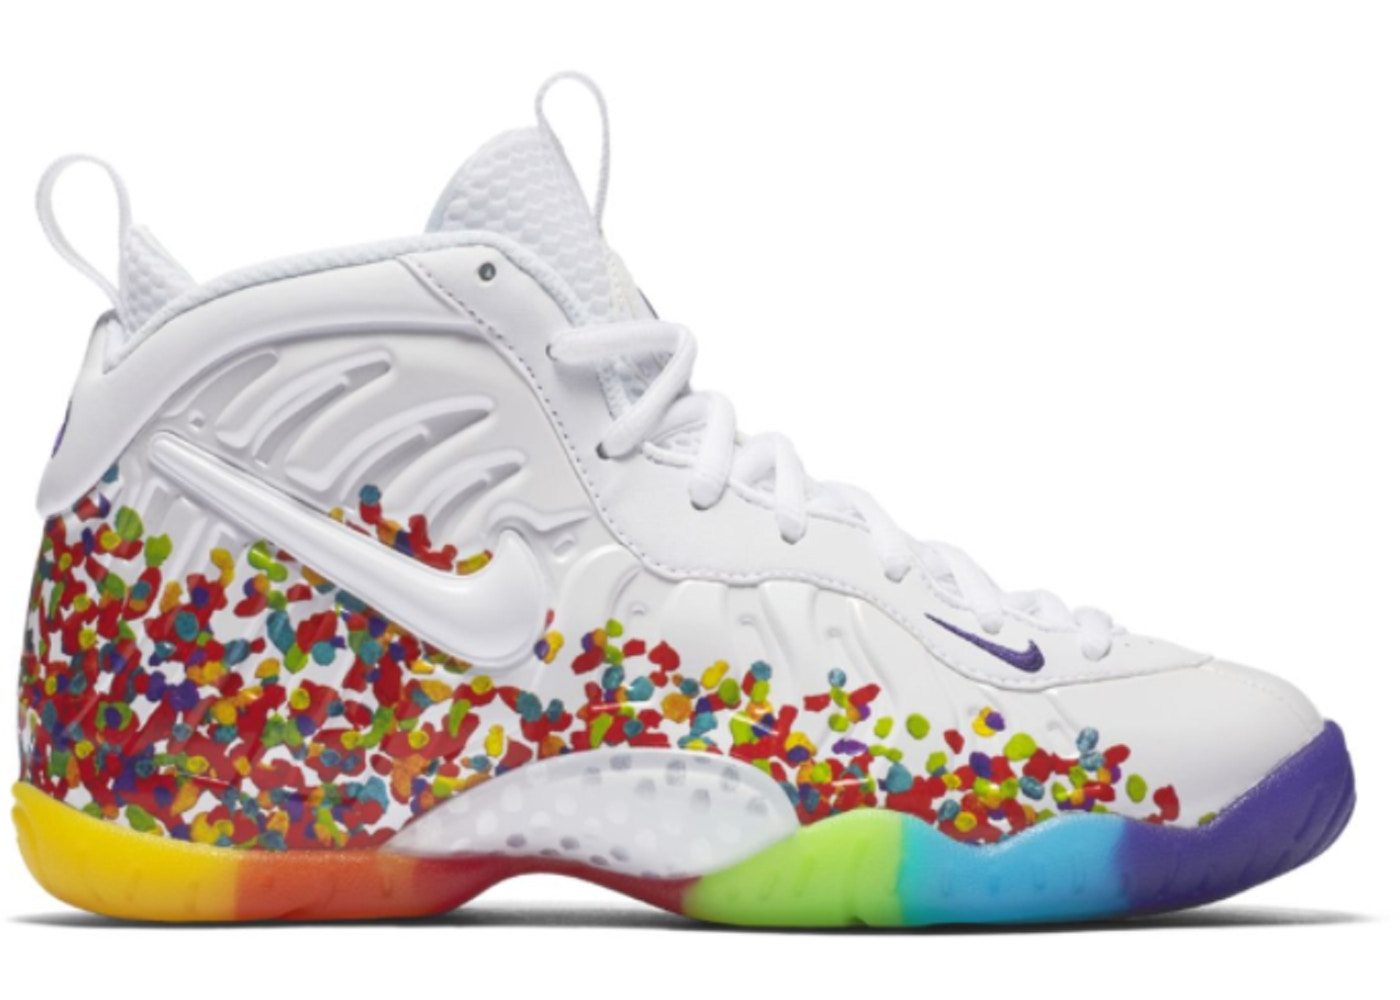 4977daf1cdc ... Air Foamposite One White Fruity Pebbles 2017 (GS)  Nike ...